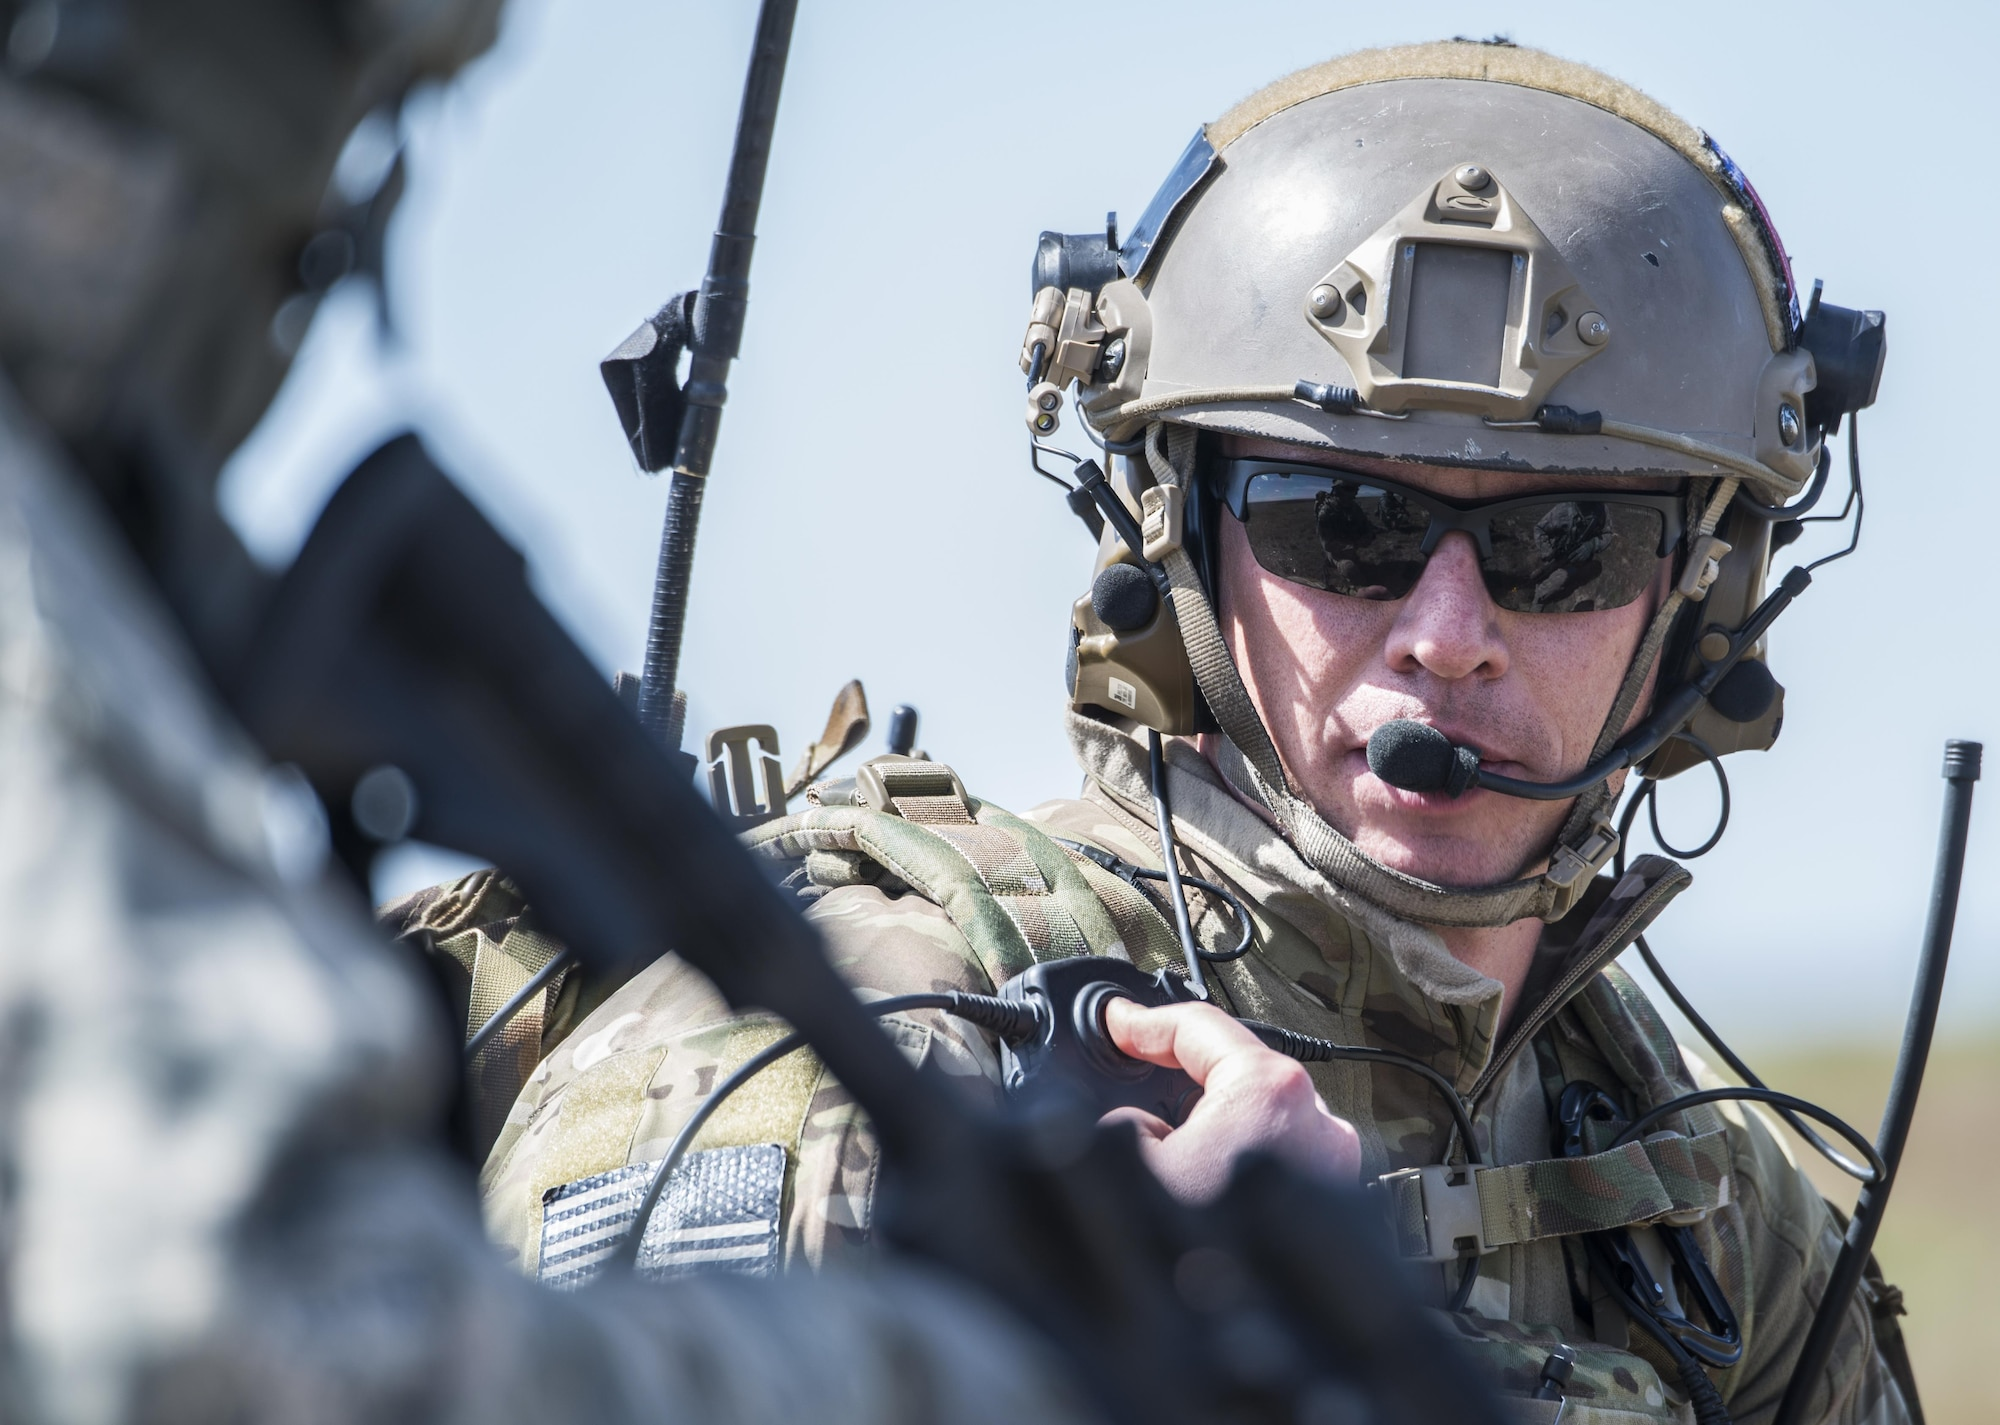 Master Sgt. Mark Andrews, 124th Air Support Operation Squadron tactical air control party, calls in close air support during Gunfighter Flag 15-2 at Saylor Creek Range, Idaho, April 15, 2015. The exercise consisted of realistic tactical scenarios to train joint service members for deployed missions. (U.S. Air Force photo/Staff Sgt. Roy Lynch III)